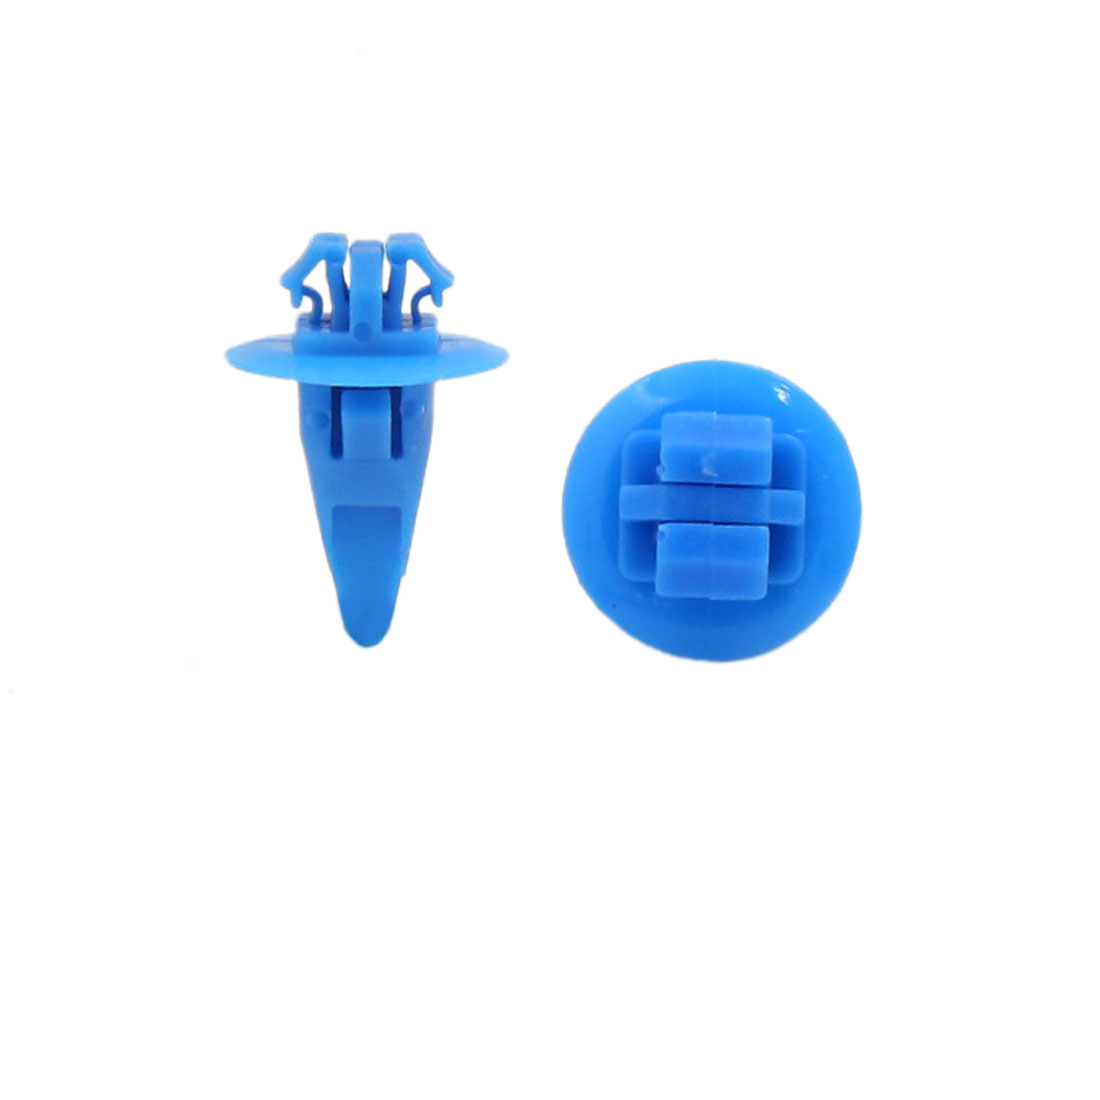 11mm x 17mm Blue Plastic Rivets Car Bumper Fender Push Clips 200 Pcs for Toyota